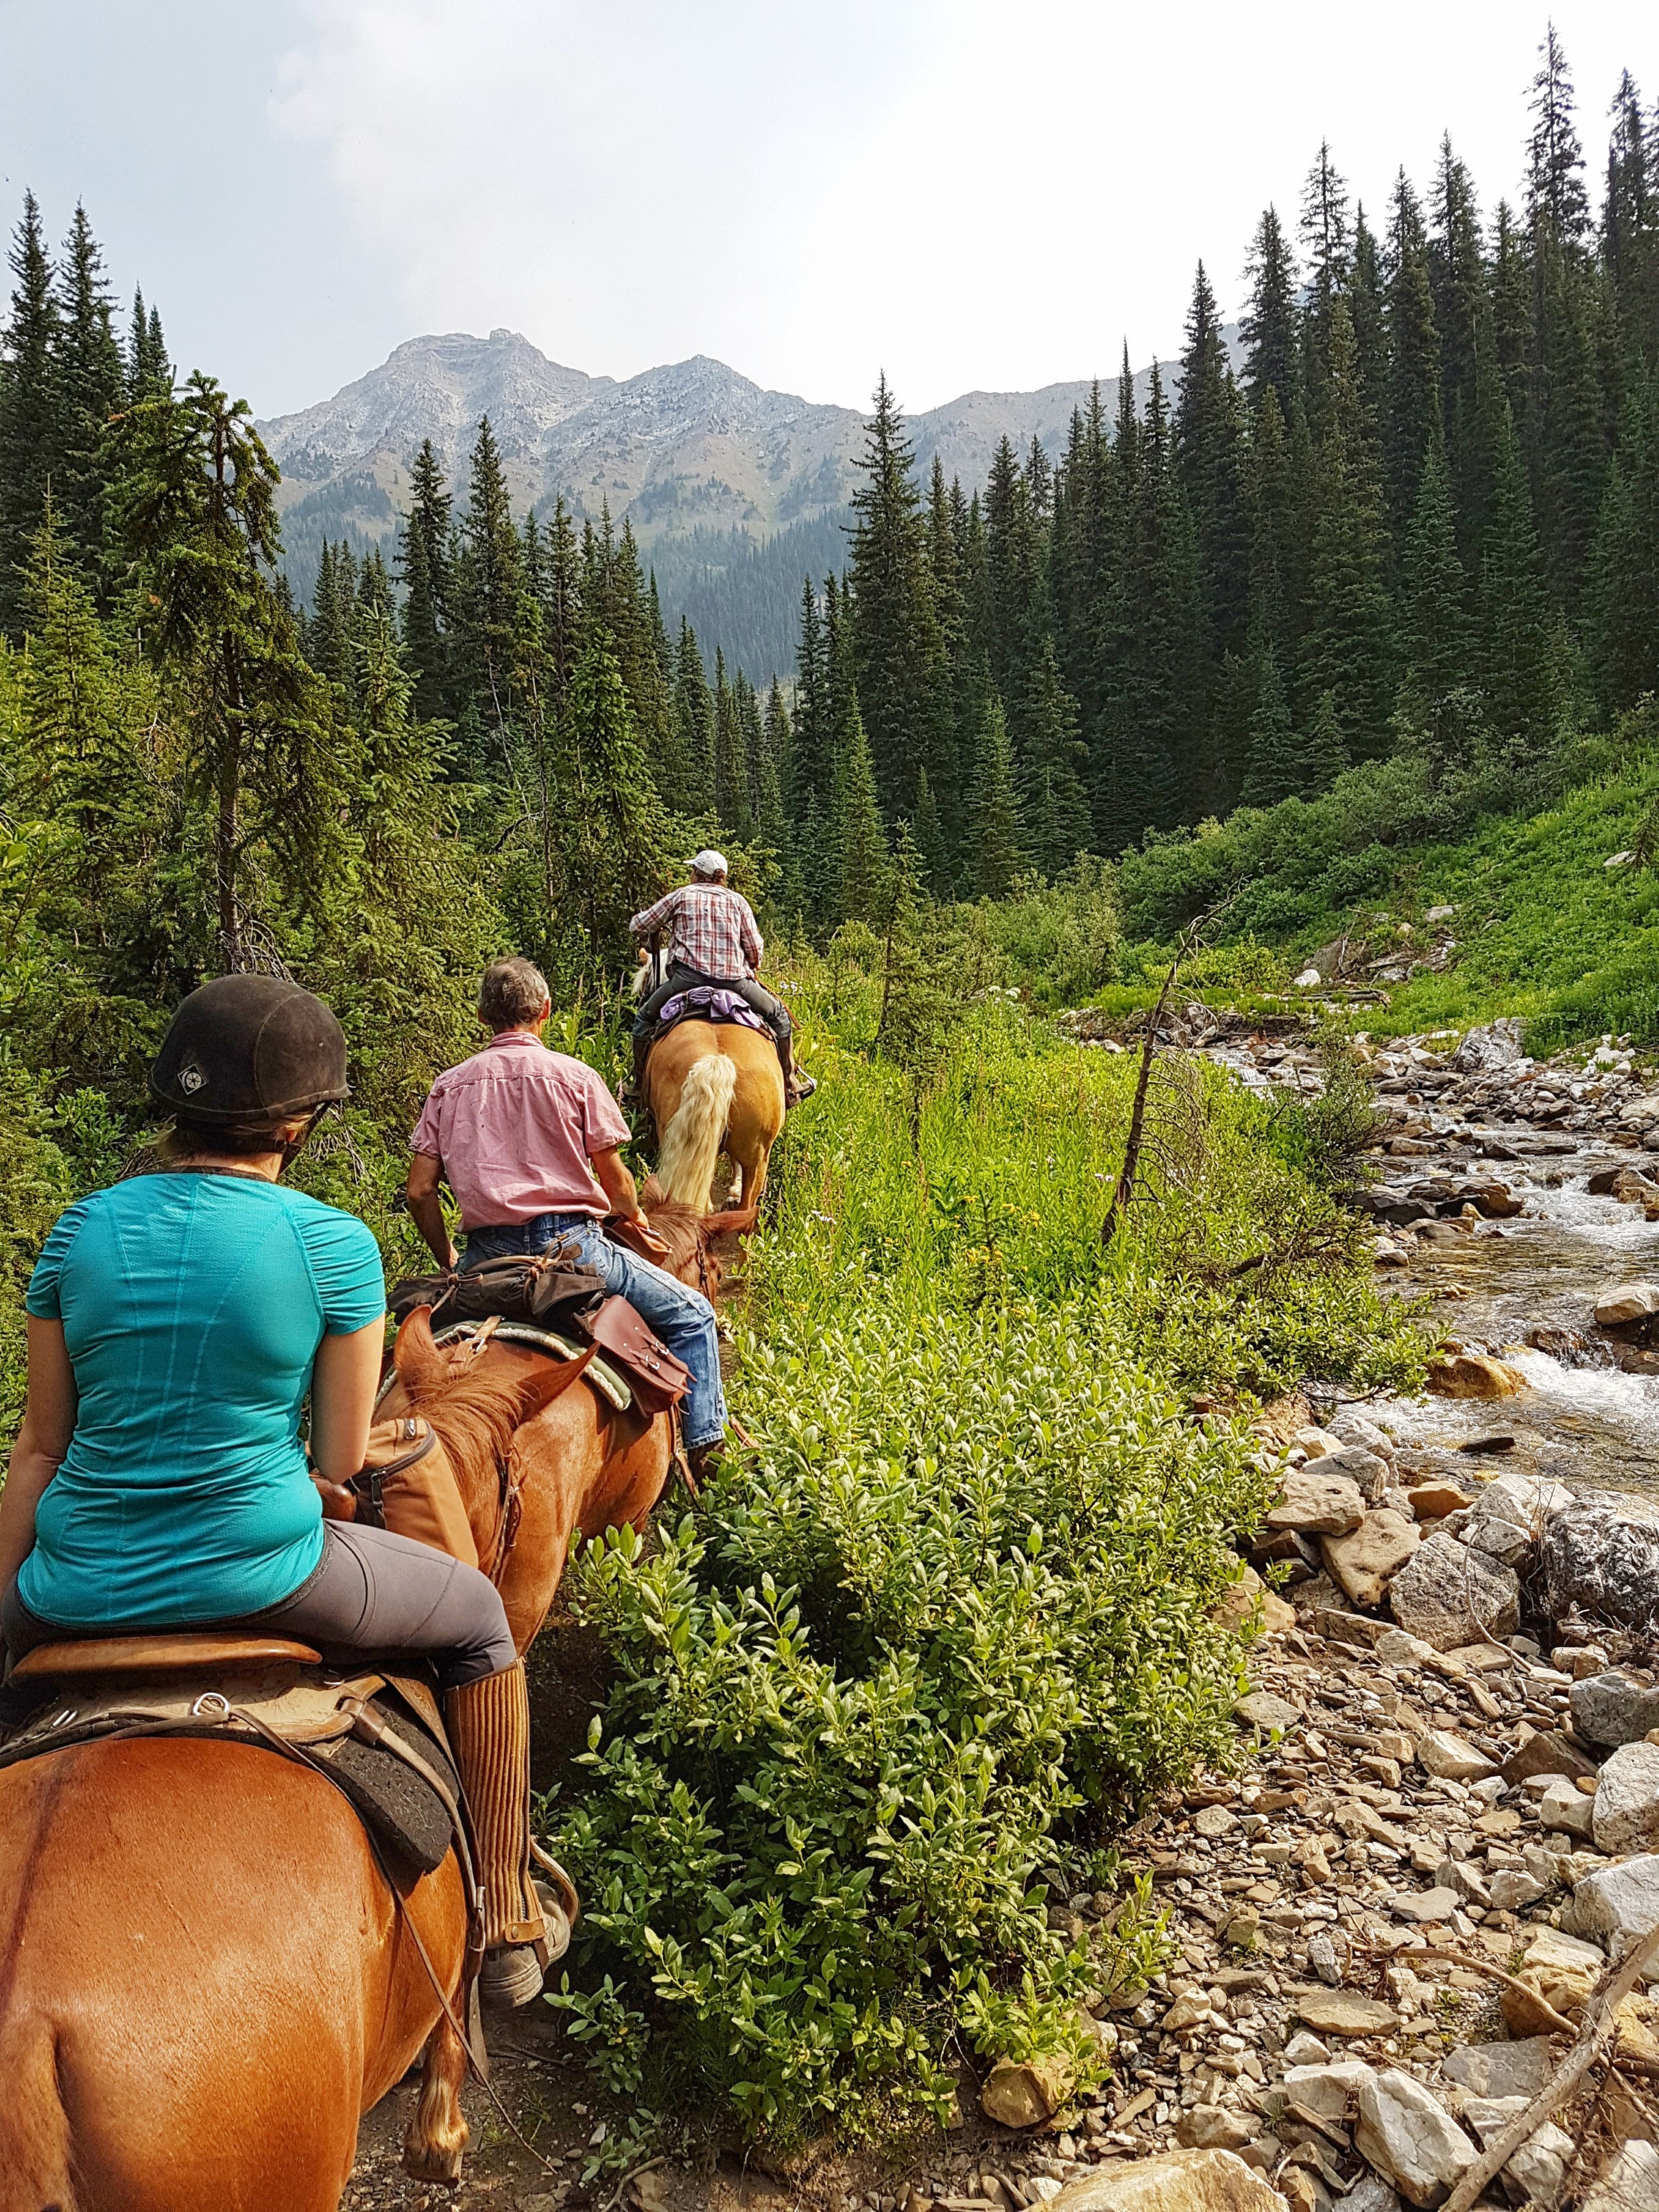 Riding by a cold mountain stream.